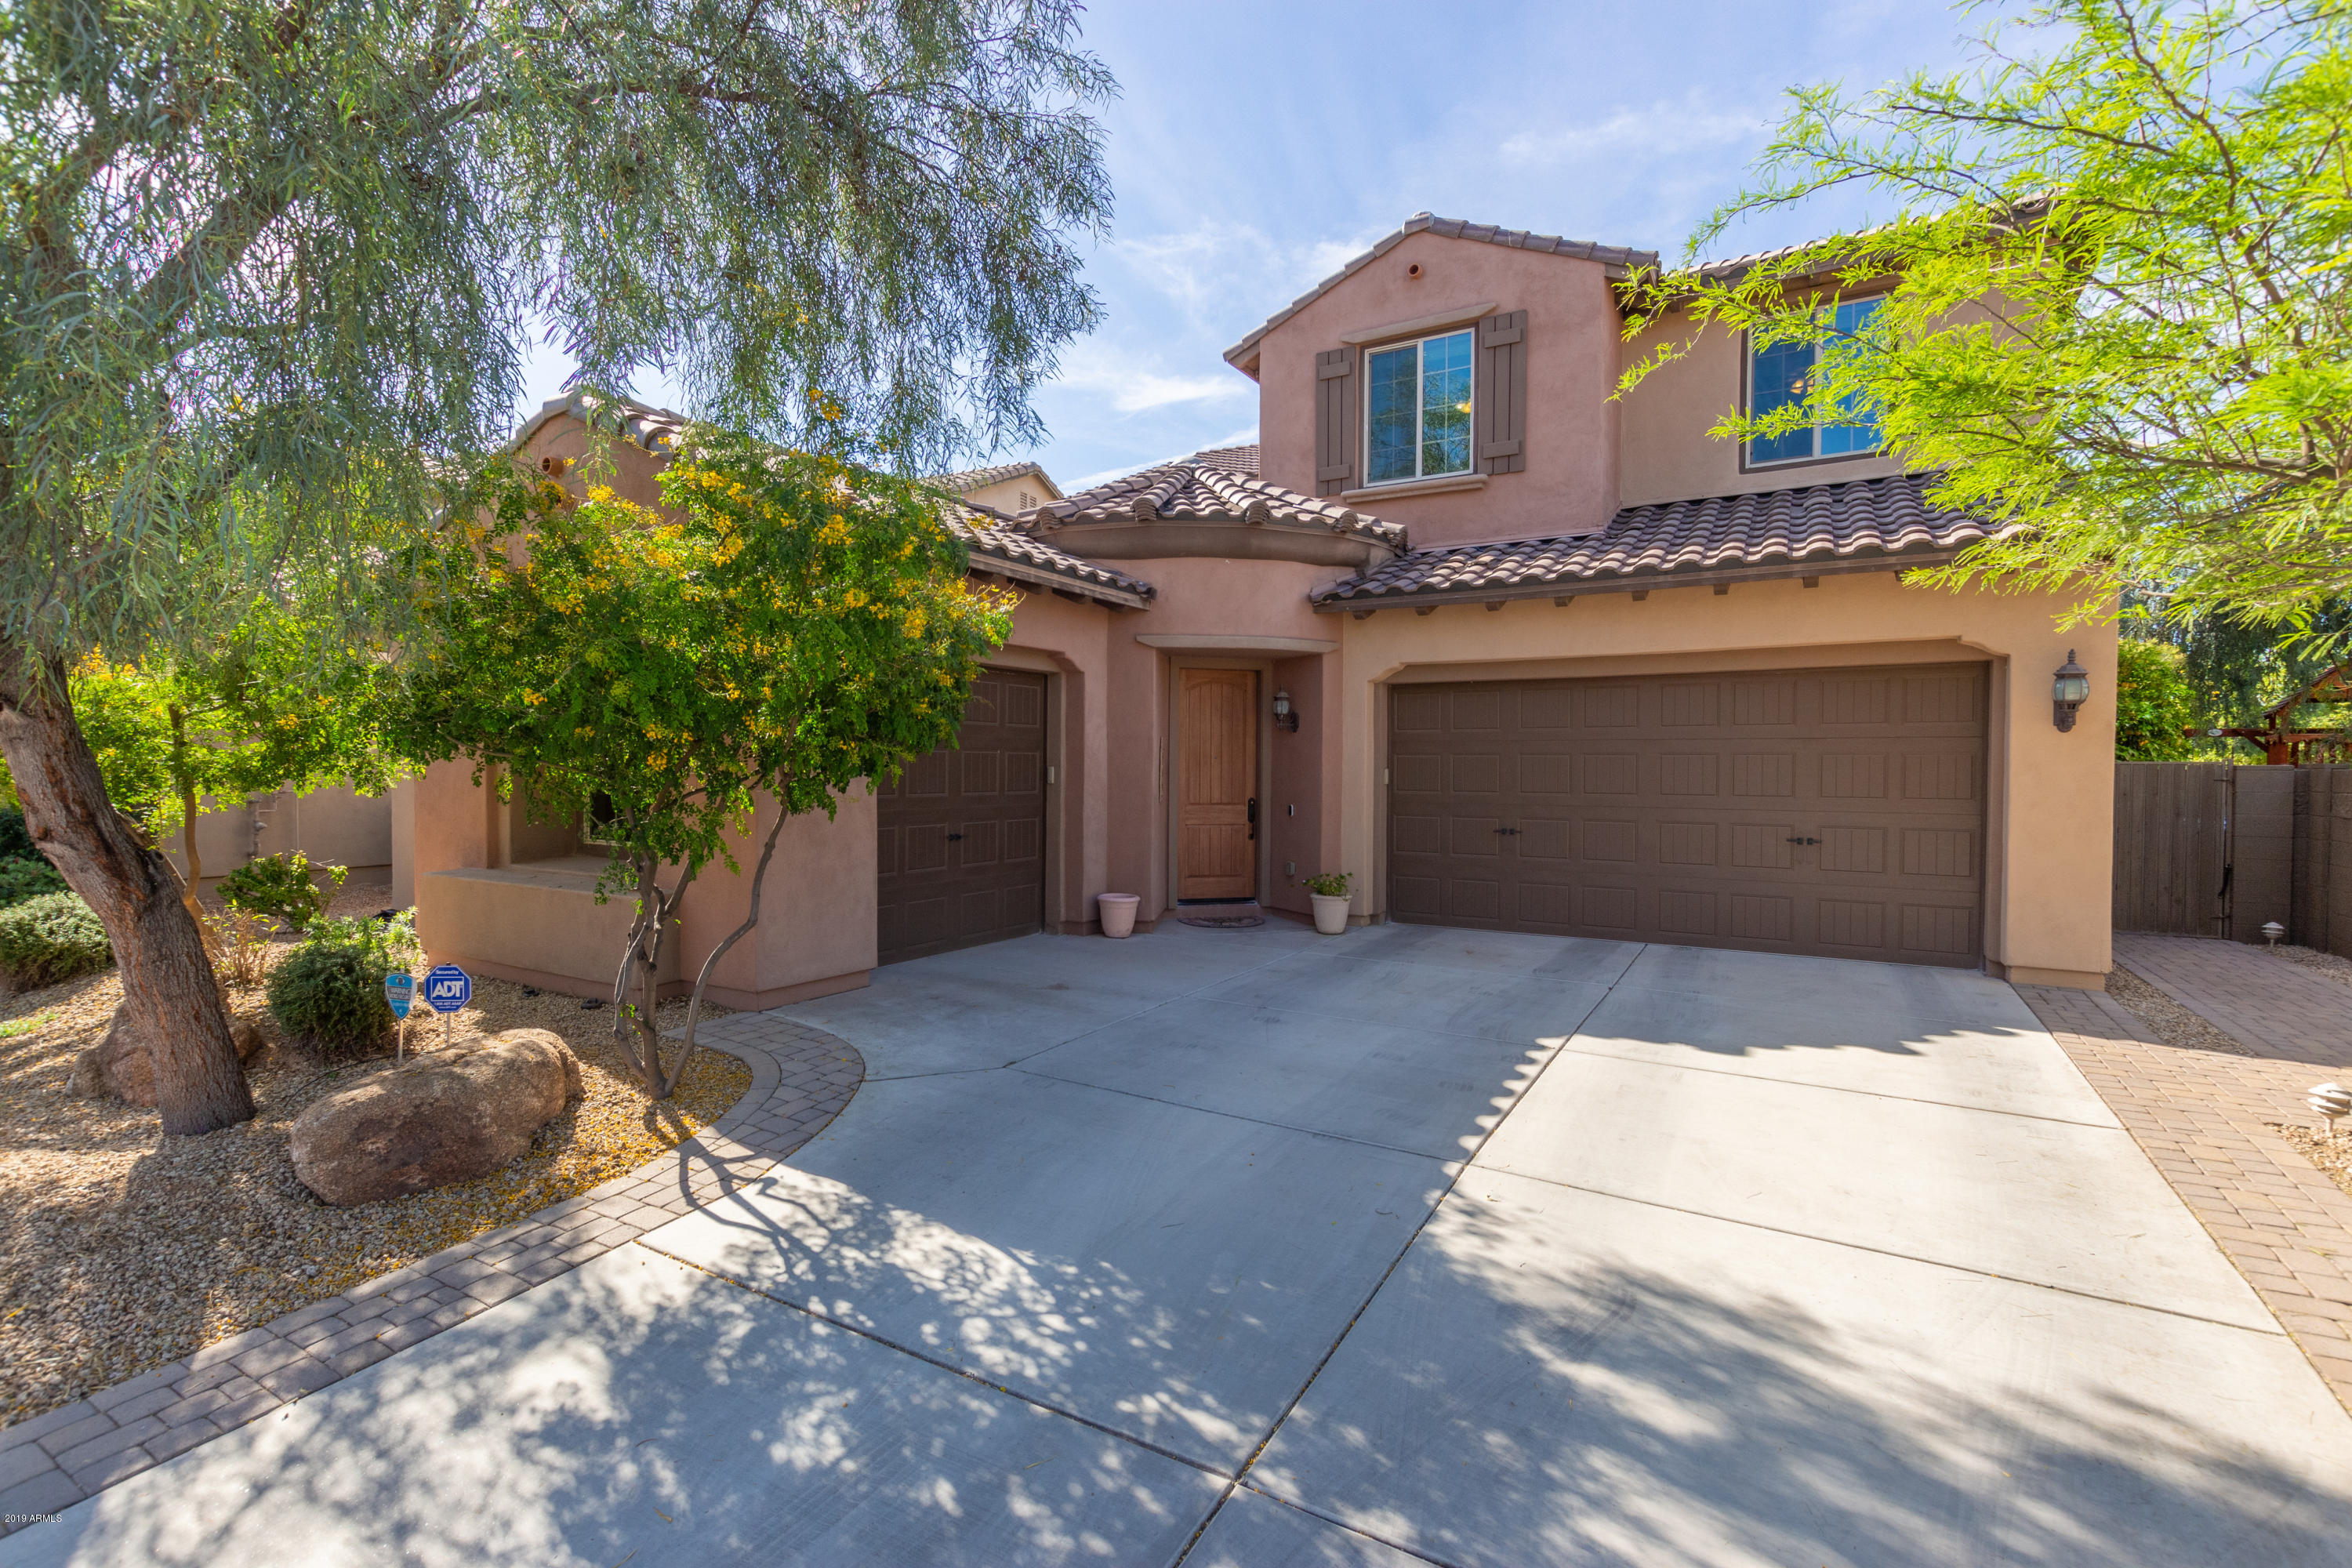 Photo of 3773 E RINGTAIL Way, Phoenix, AZ 85050